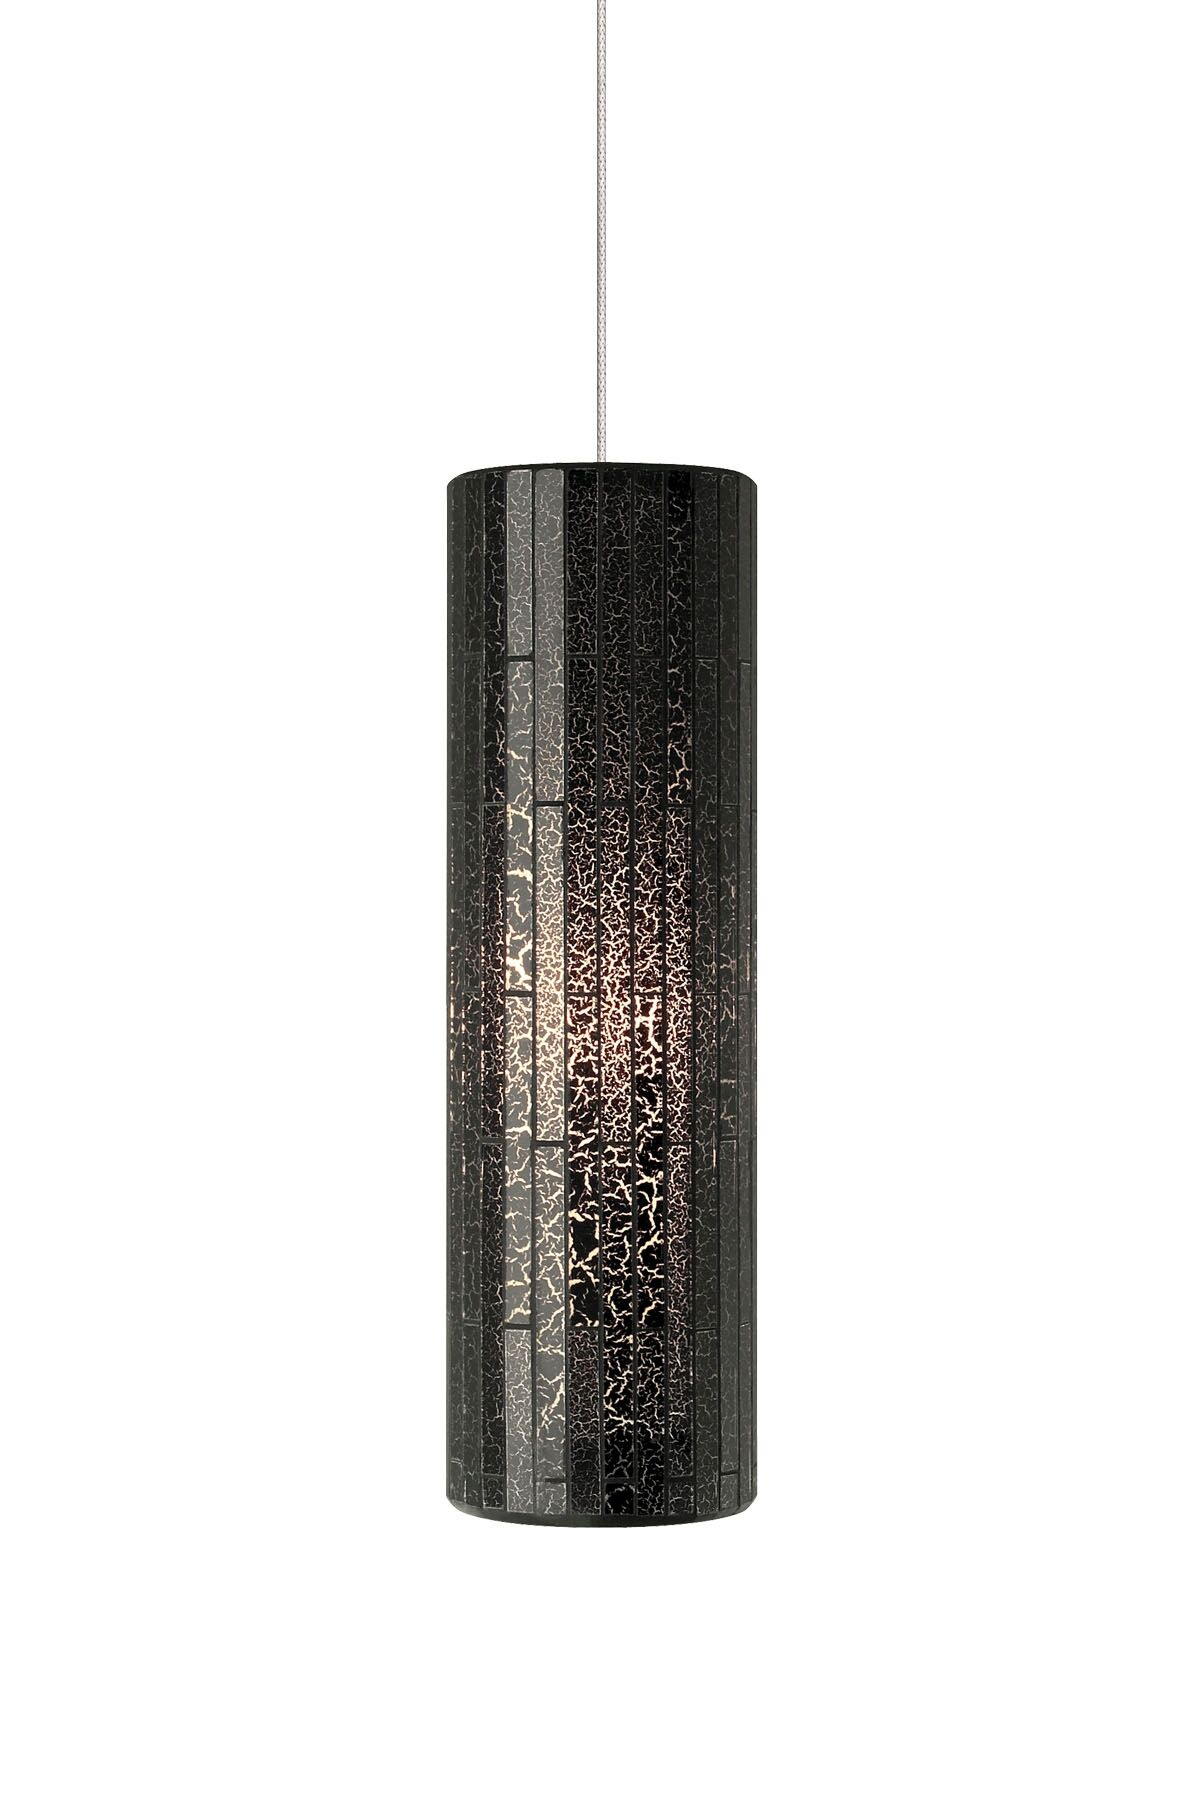 Peyton Grande 1-Light Cylinder Pendant Finish: Satin Nickel, Finish: White, Bulb Type: 1 x 60W 120V Incandescent